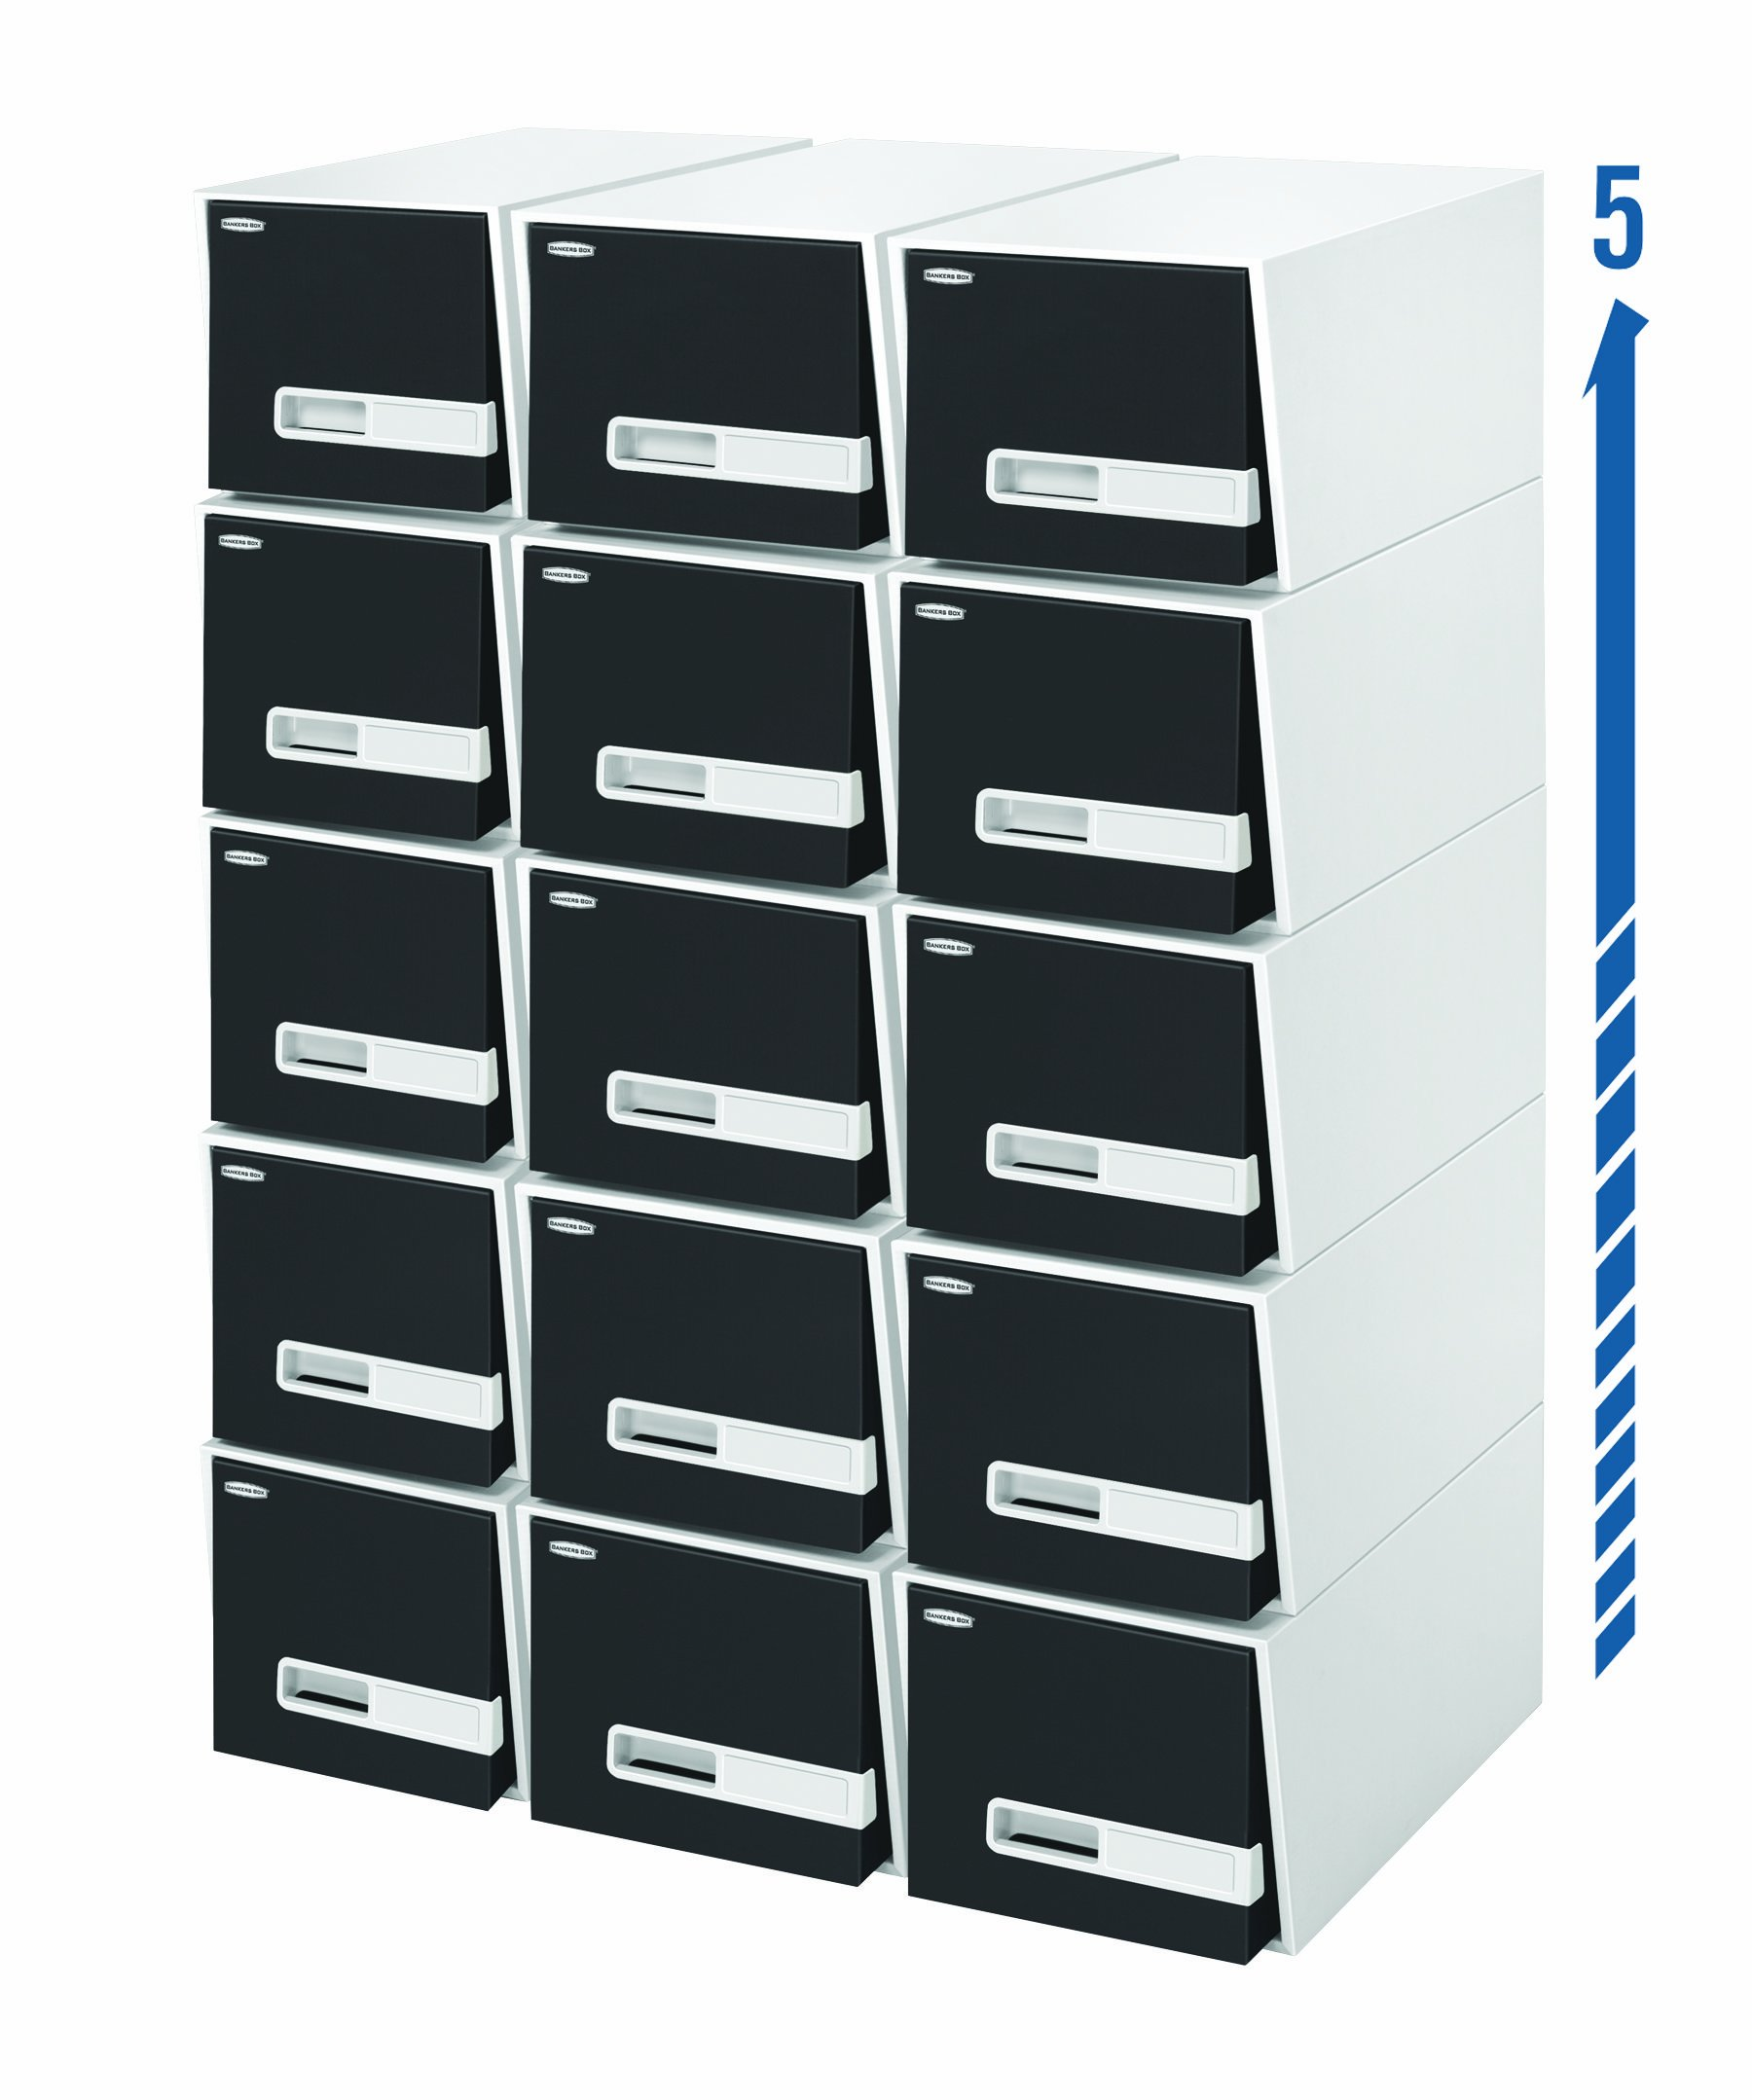 Bankers Box Stor/Drawer Premier Drawers, 24-Inch Legal, Black, 5 Pack (3792101) by Bankers Box (Image #2)